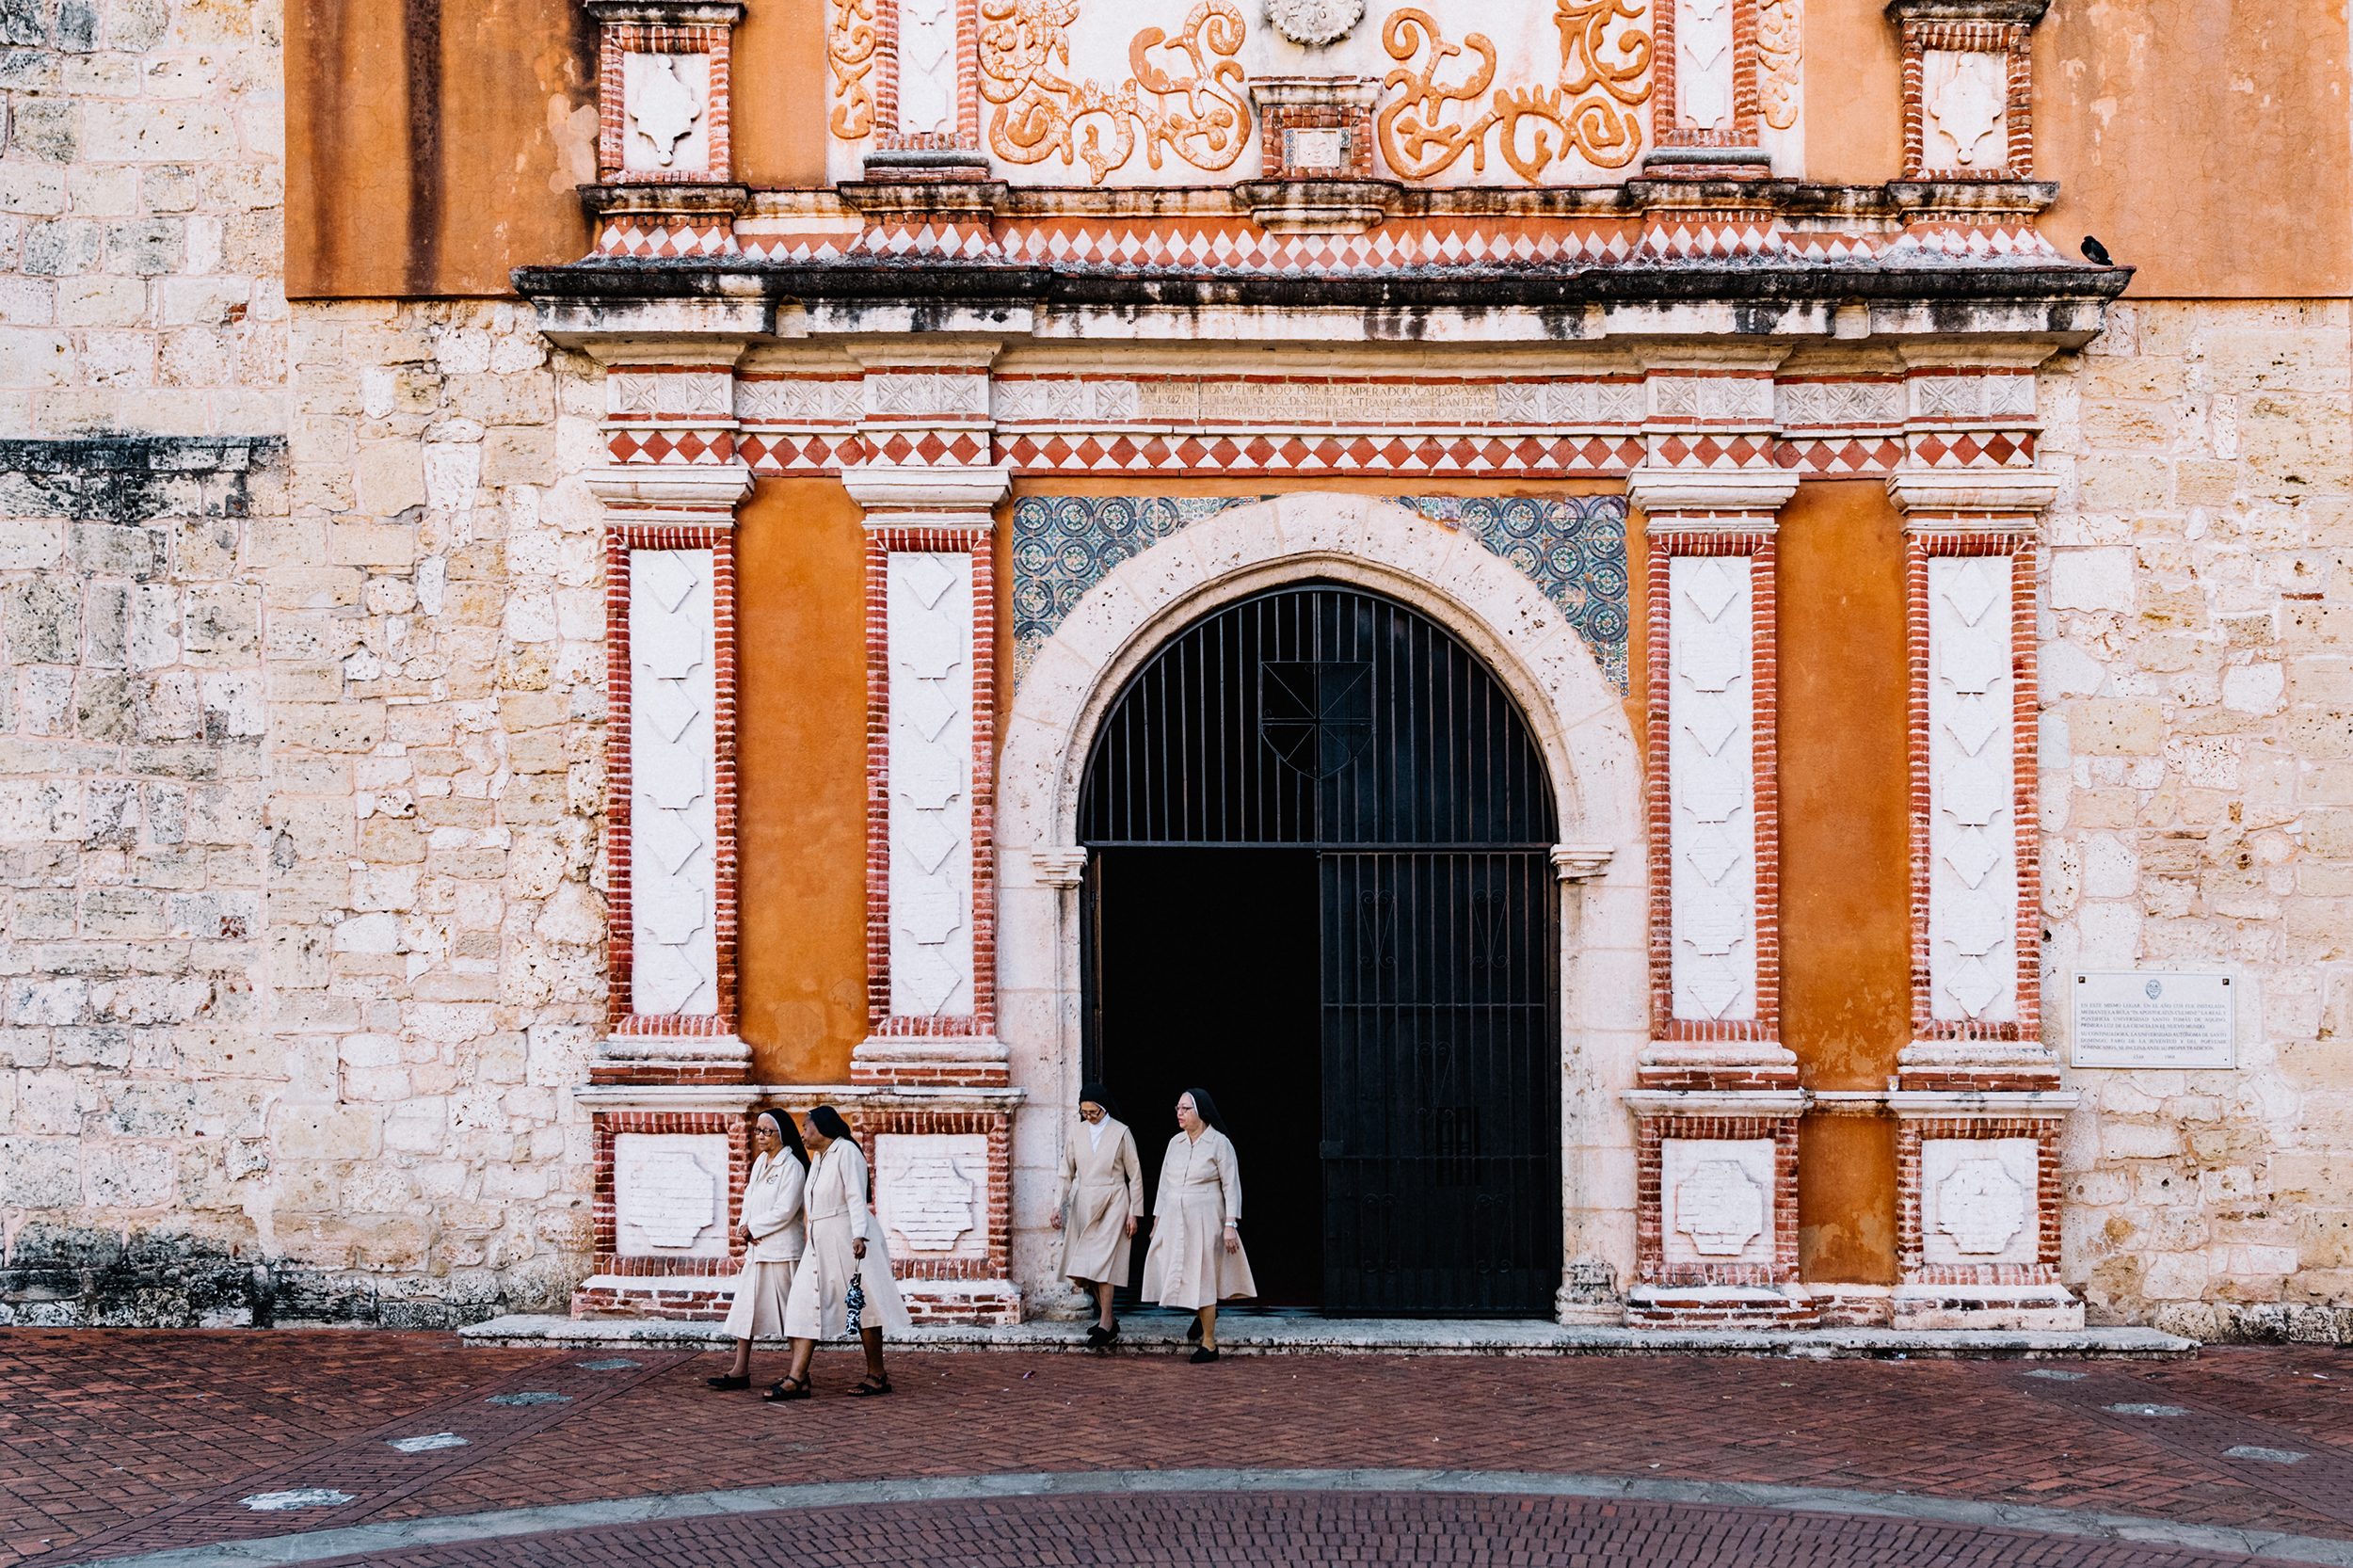 Convento de los Dominicos (Dominican Convent) | Built around 1510, it is the oldest Catholic building of the Americas, and still used for church services today.